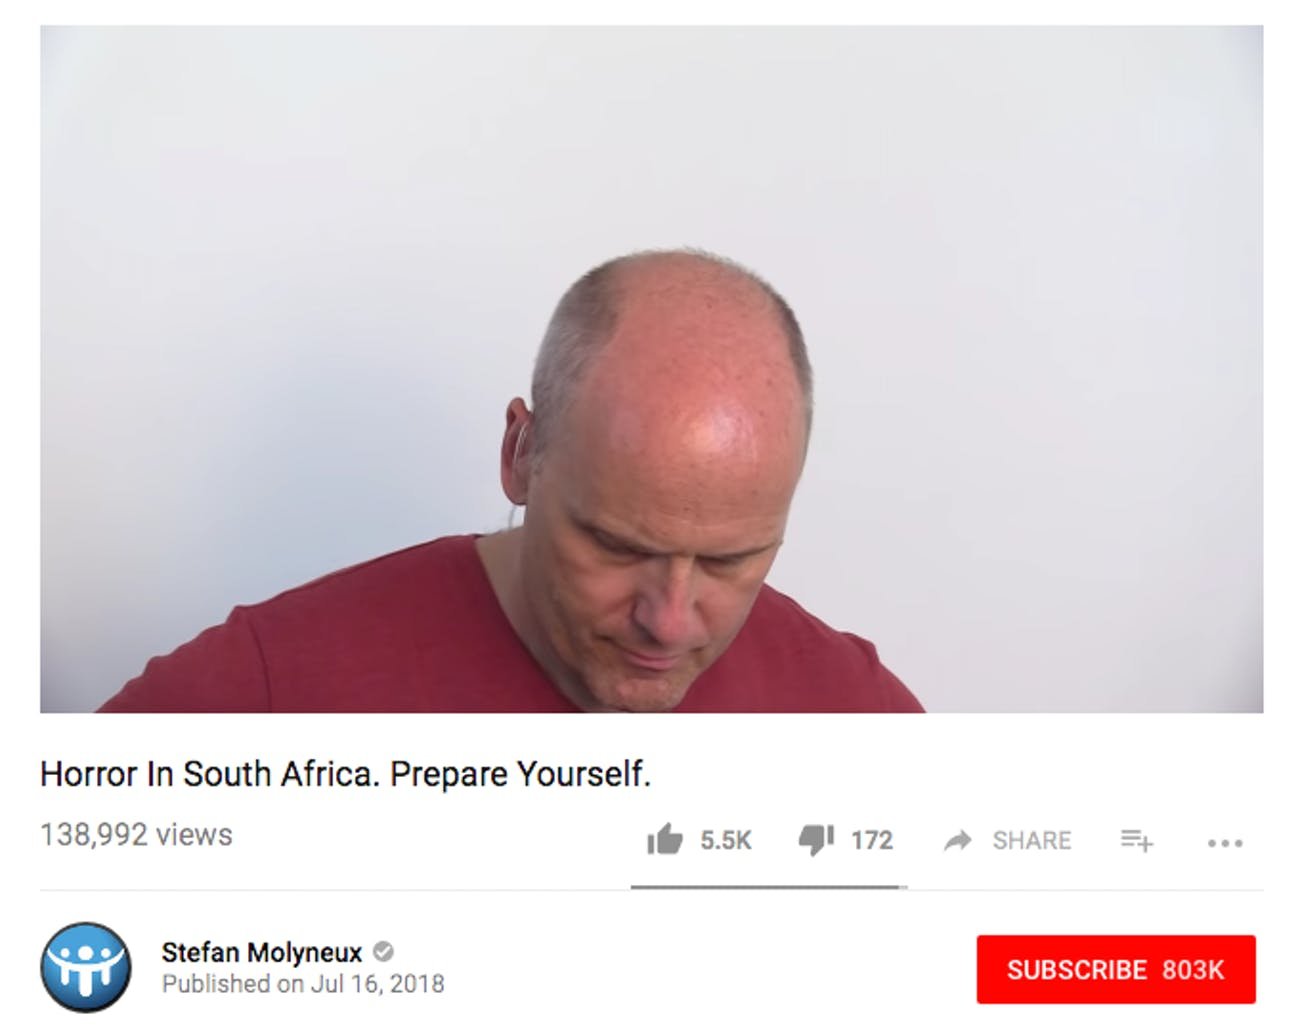 Stefan Molyneux as he appears in a Youtube video on his channel.